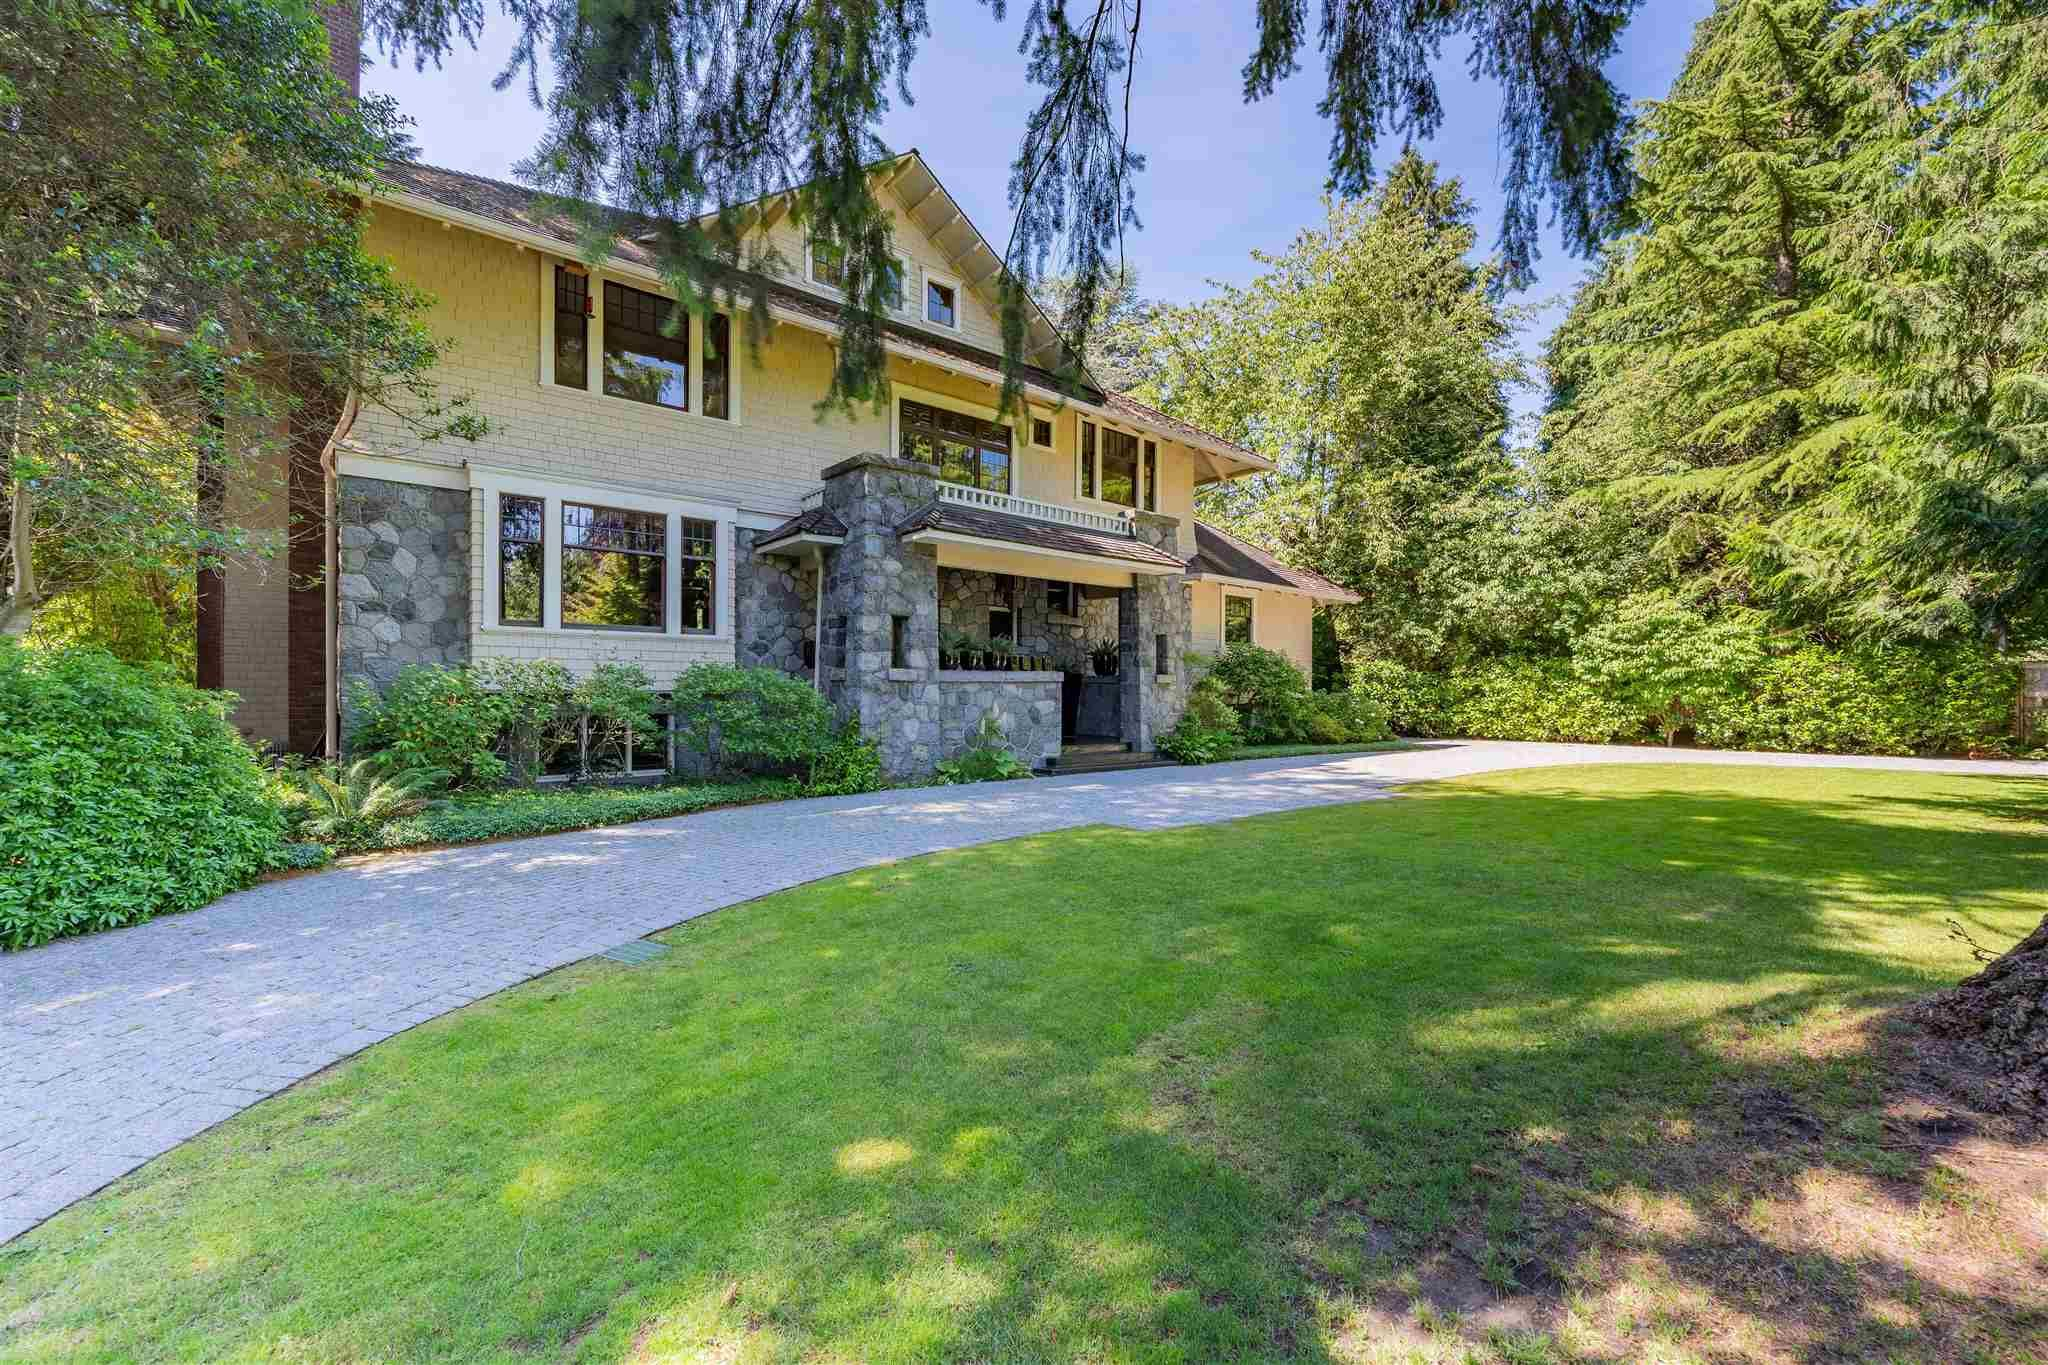 Main Photo: 3369 THE CRESCENT in Vancouver: Shaughnessy House for sale (Vancouver West)  : MLS®# R2534743